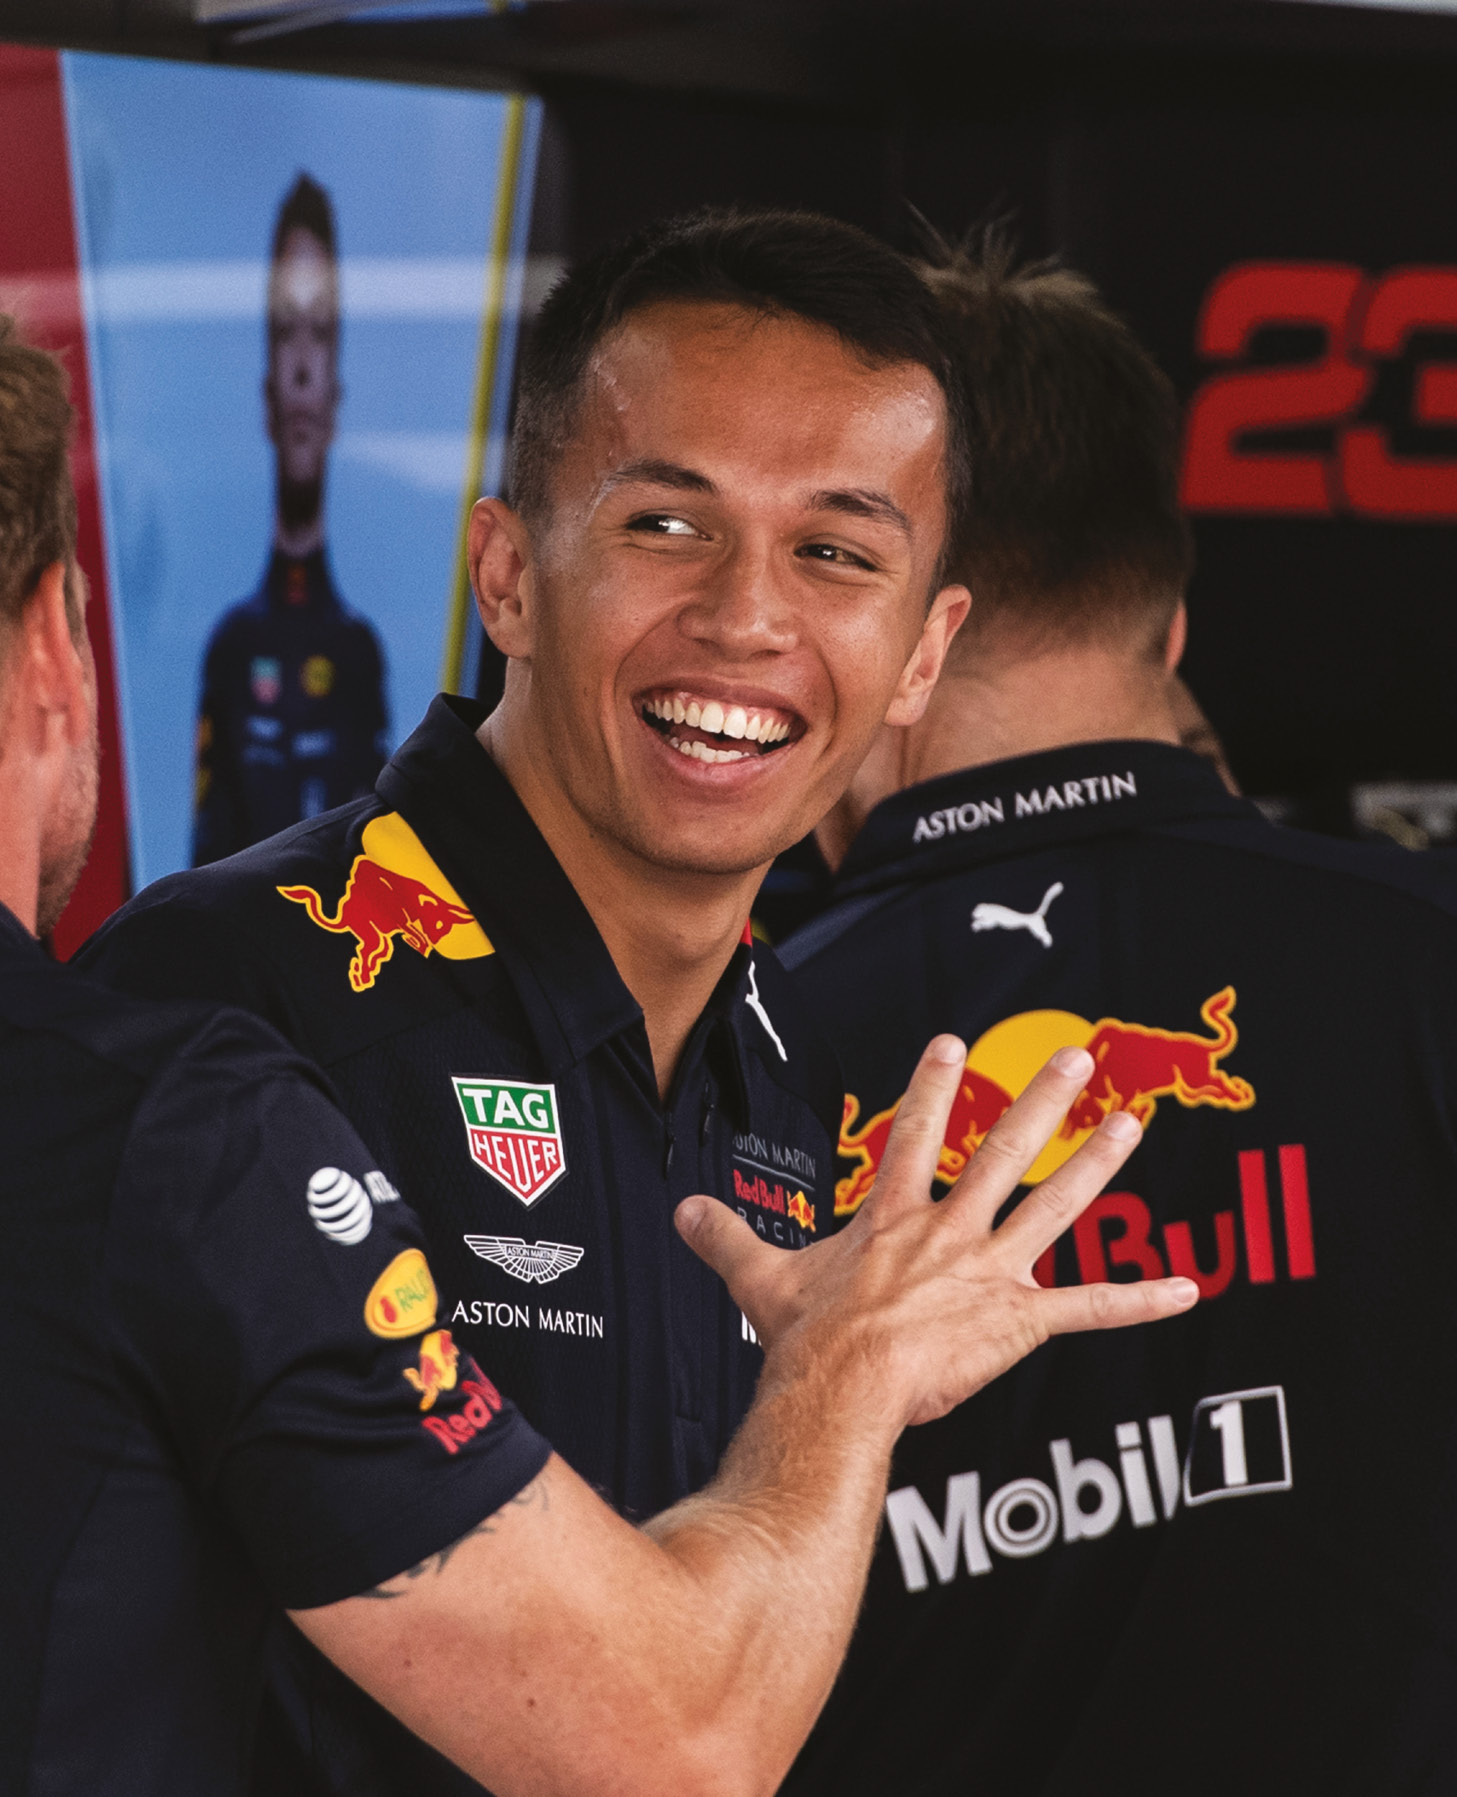 Runner-up in GP3, then third in Formula 2 last year, Albon is now in at the deep end with the Red Bull team